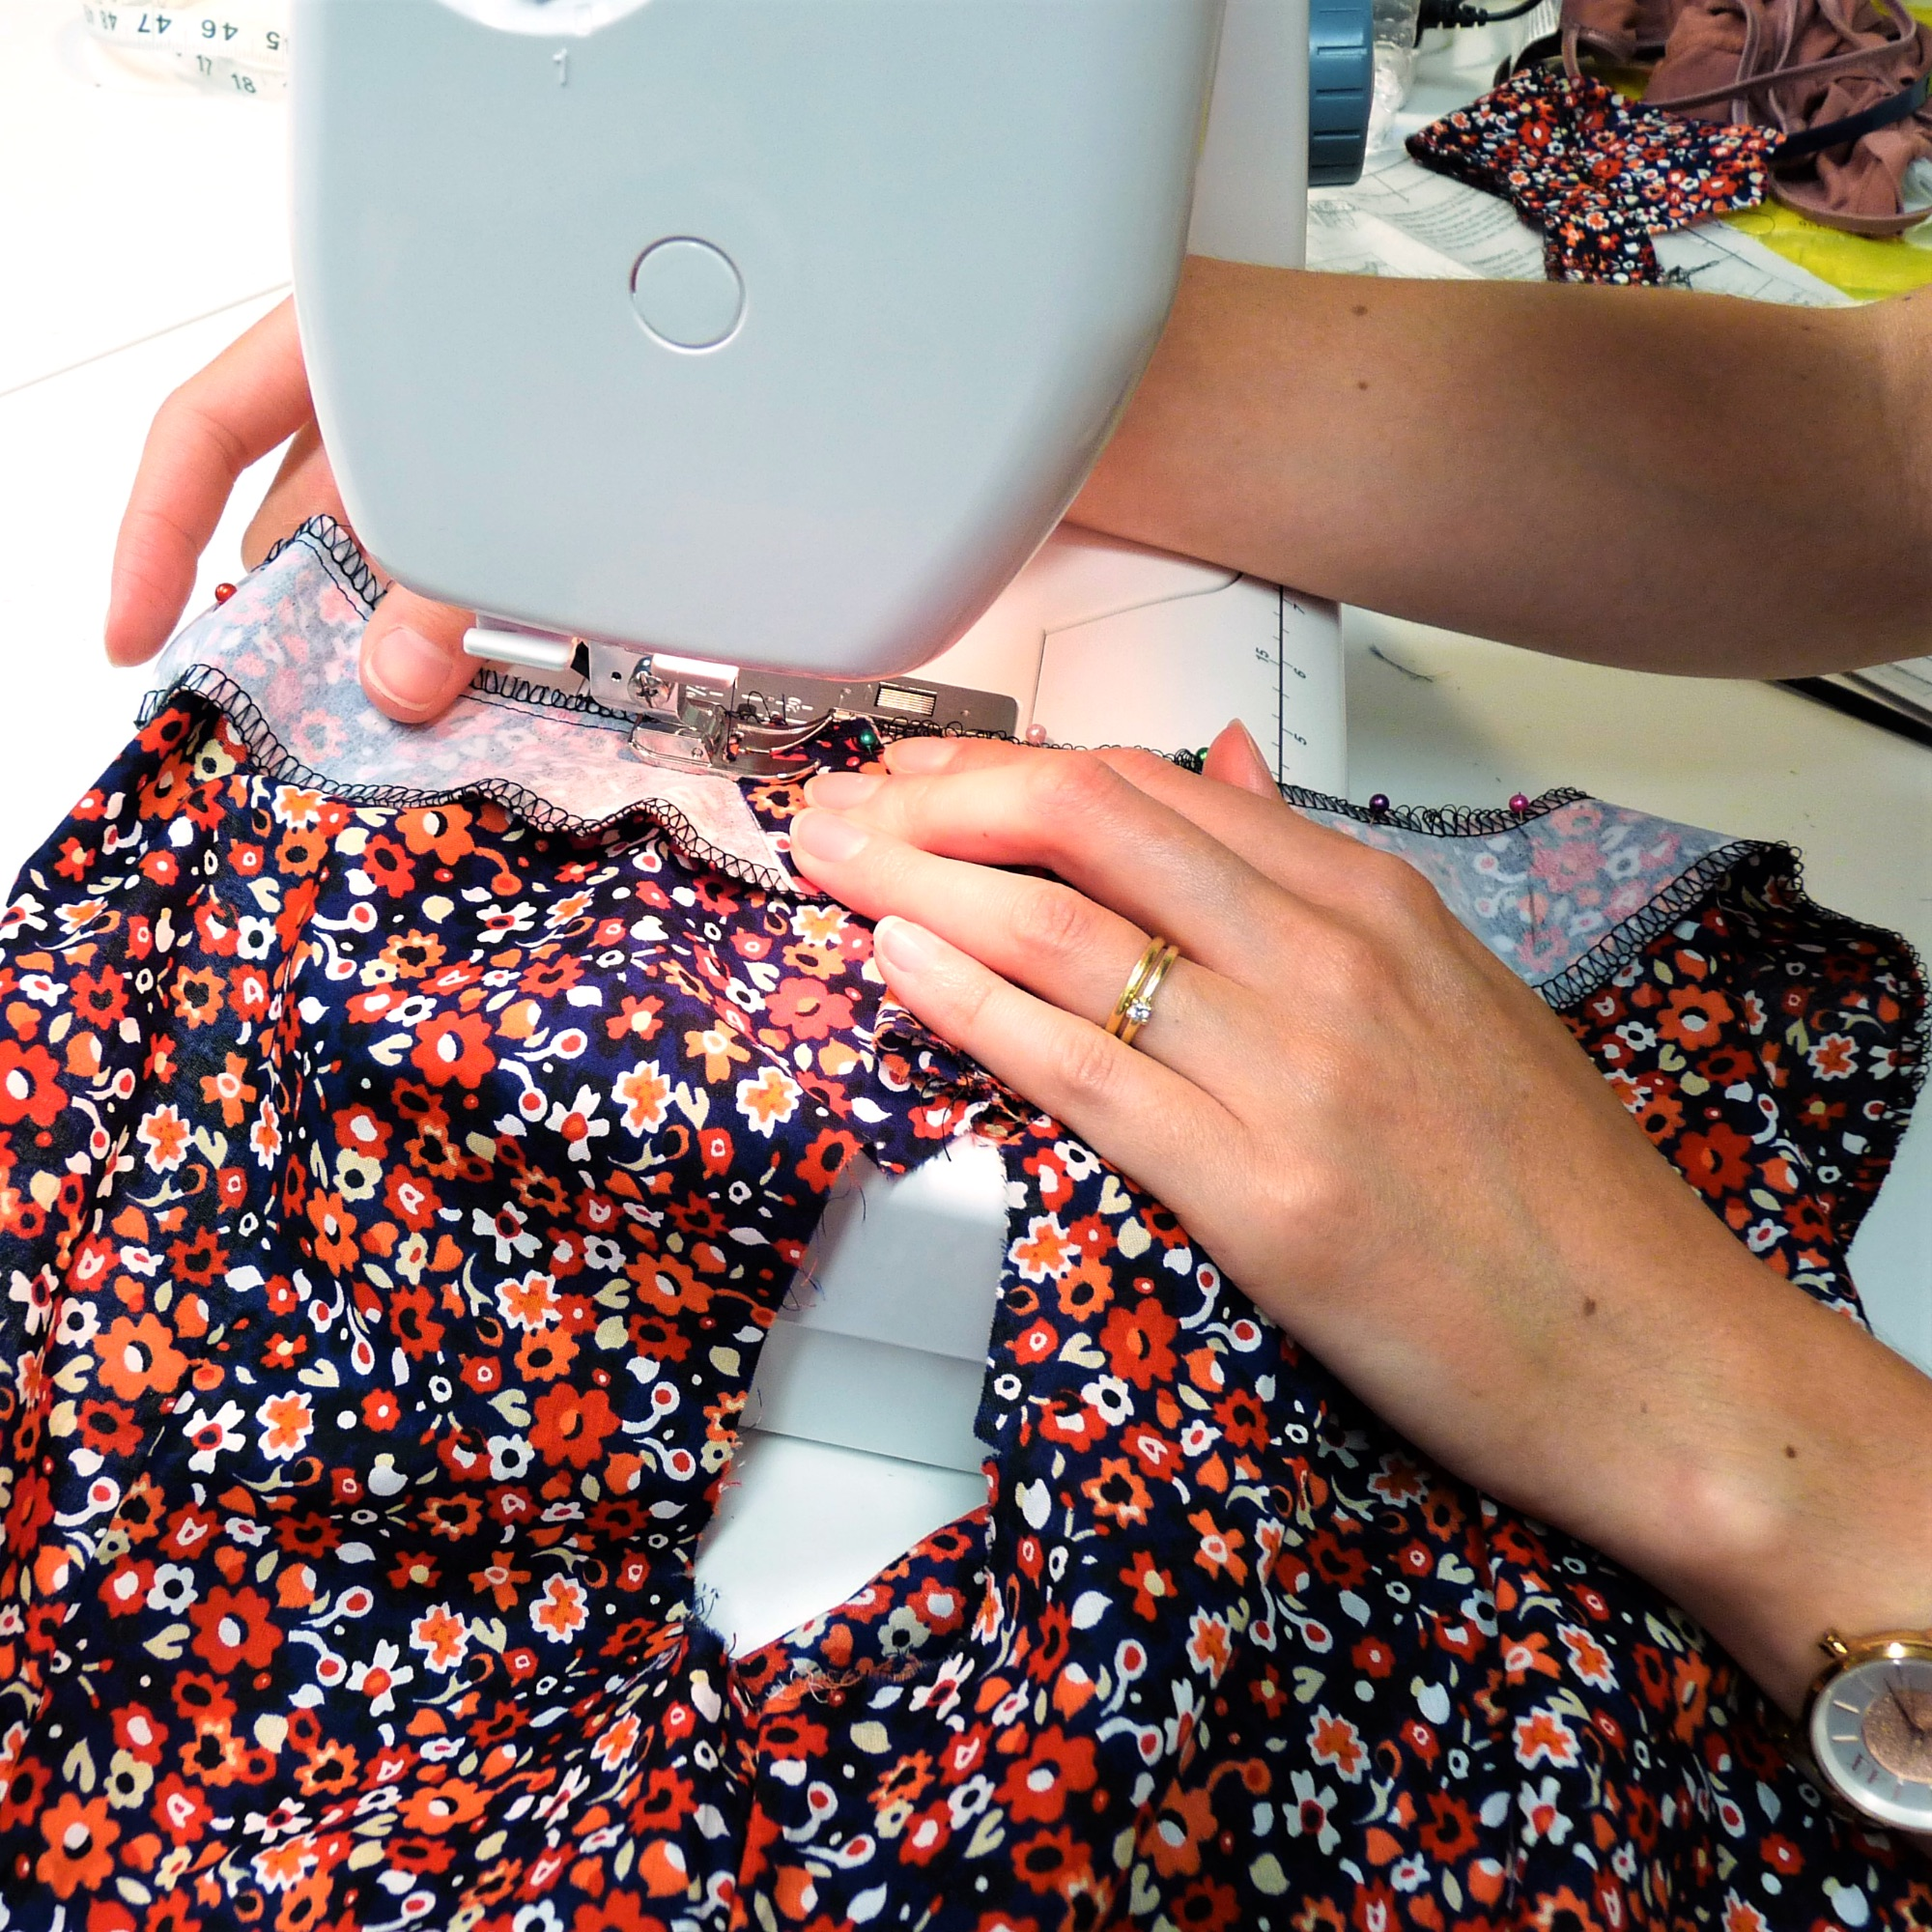 Weekly sewing classes in Brighton & Hove for all levels including total beginners